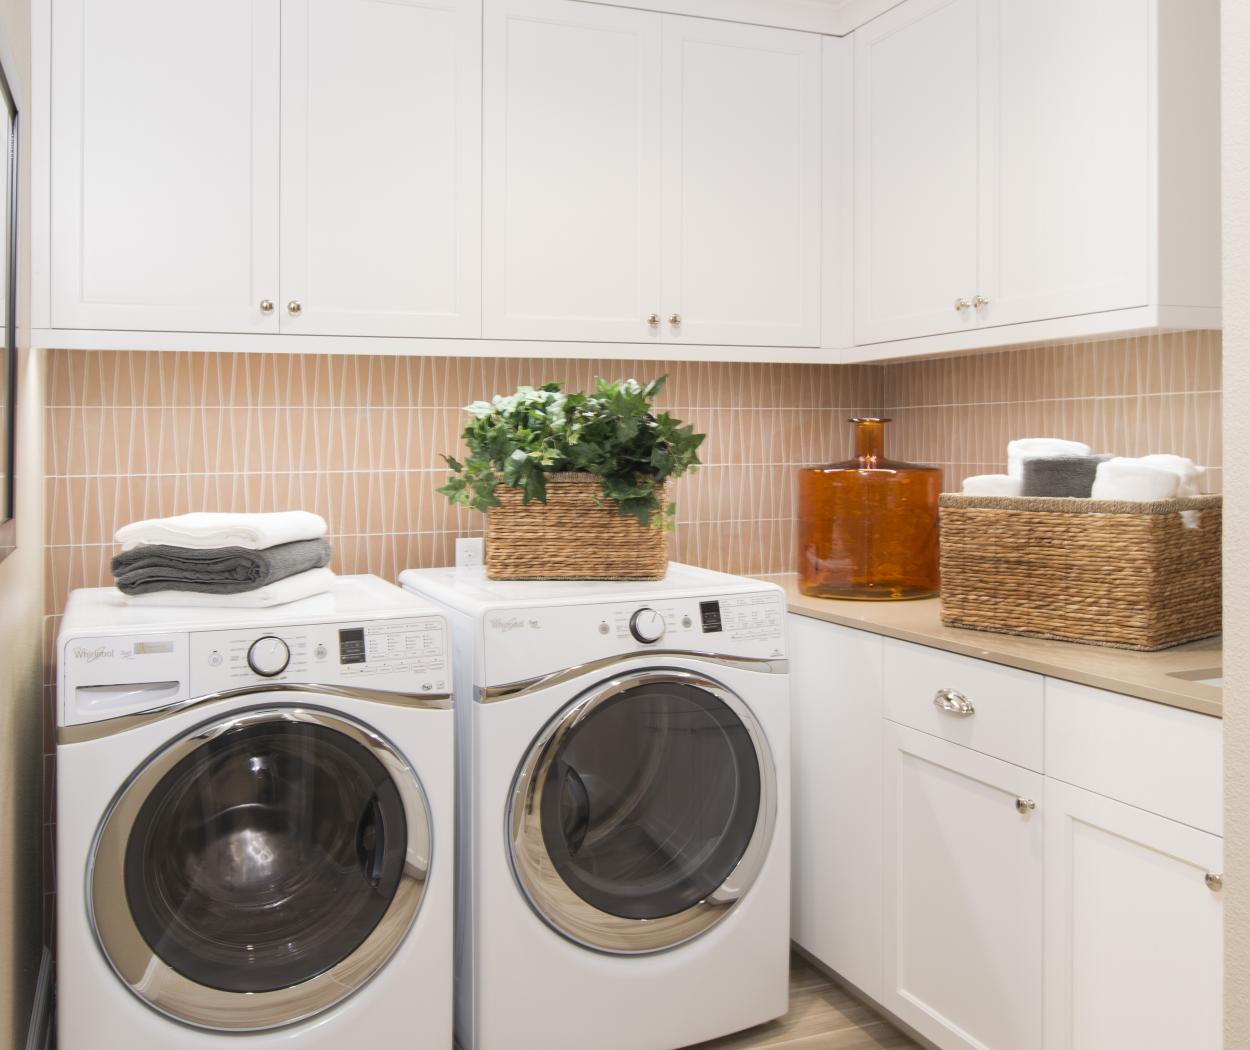 Beautiful White Transitional Laundry Room with a White Washer and Dryer, Silver Knobs and Pulls